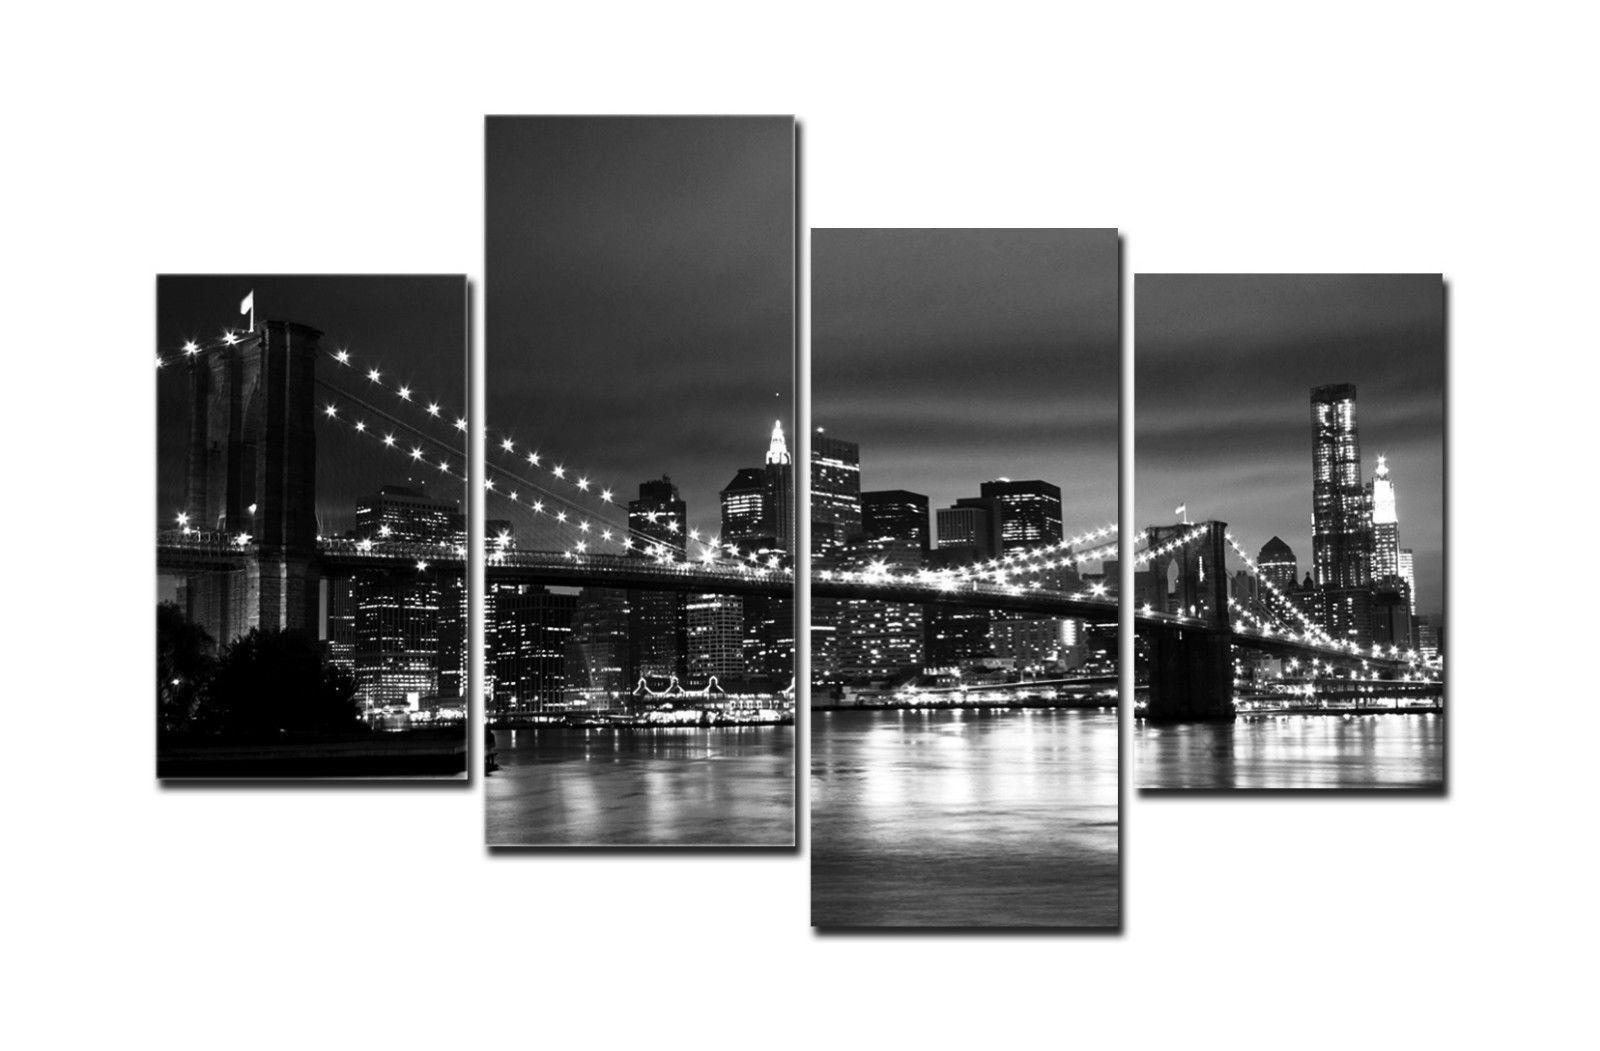 Hd Canvas Print Home Decor Wall Art Painting New York Bridge – No Regarding Recent Canvas Wall Art Of New York City (View 9 of 15)